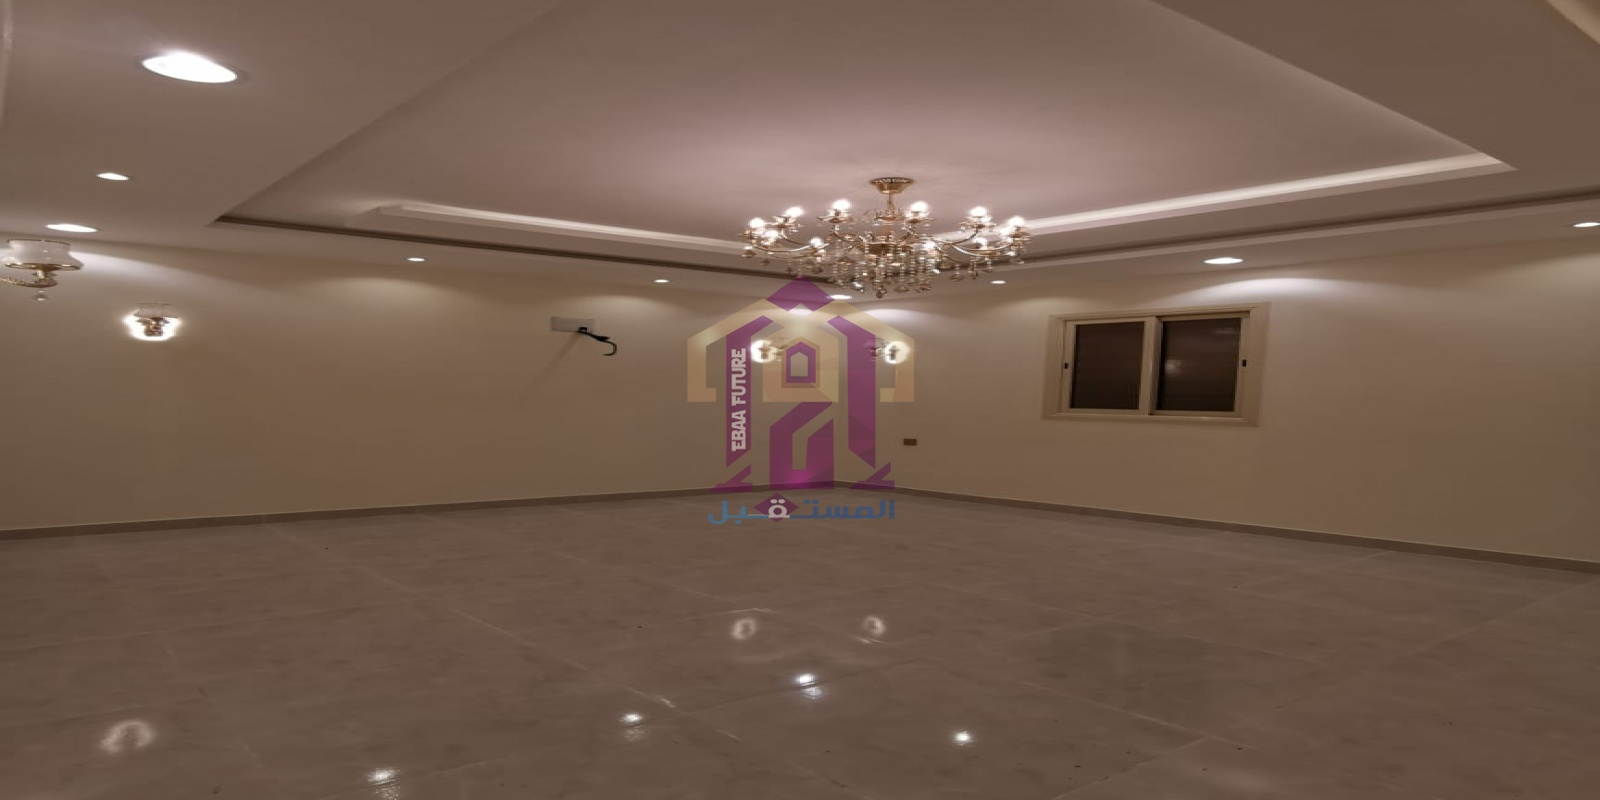 6 Bedrooms Bedrooms, ,7 BathroomsBathrooms,شقة,للبيع,1049